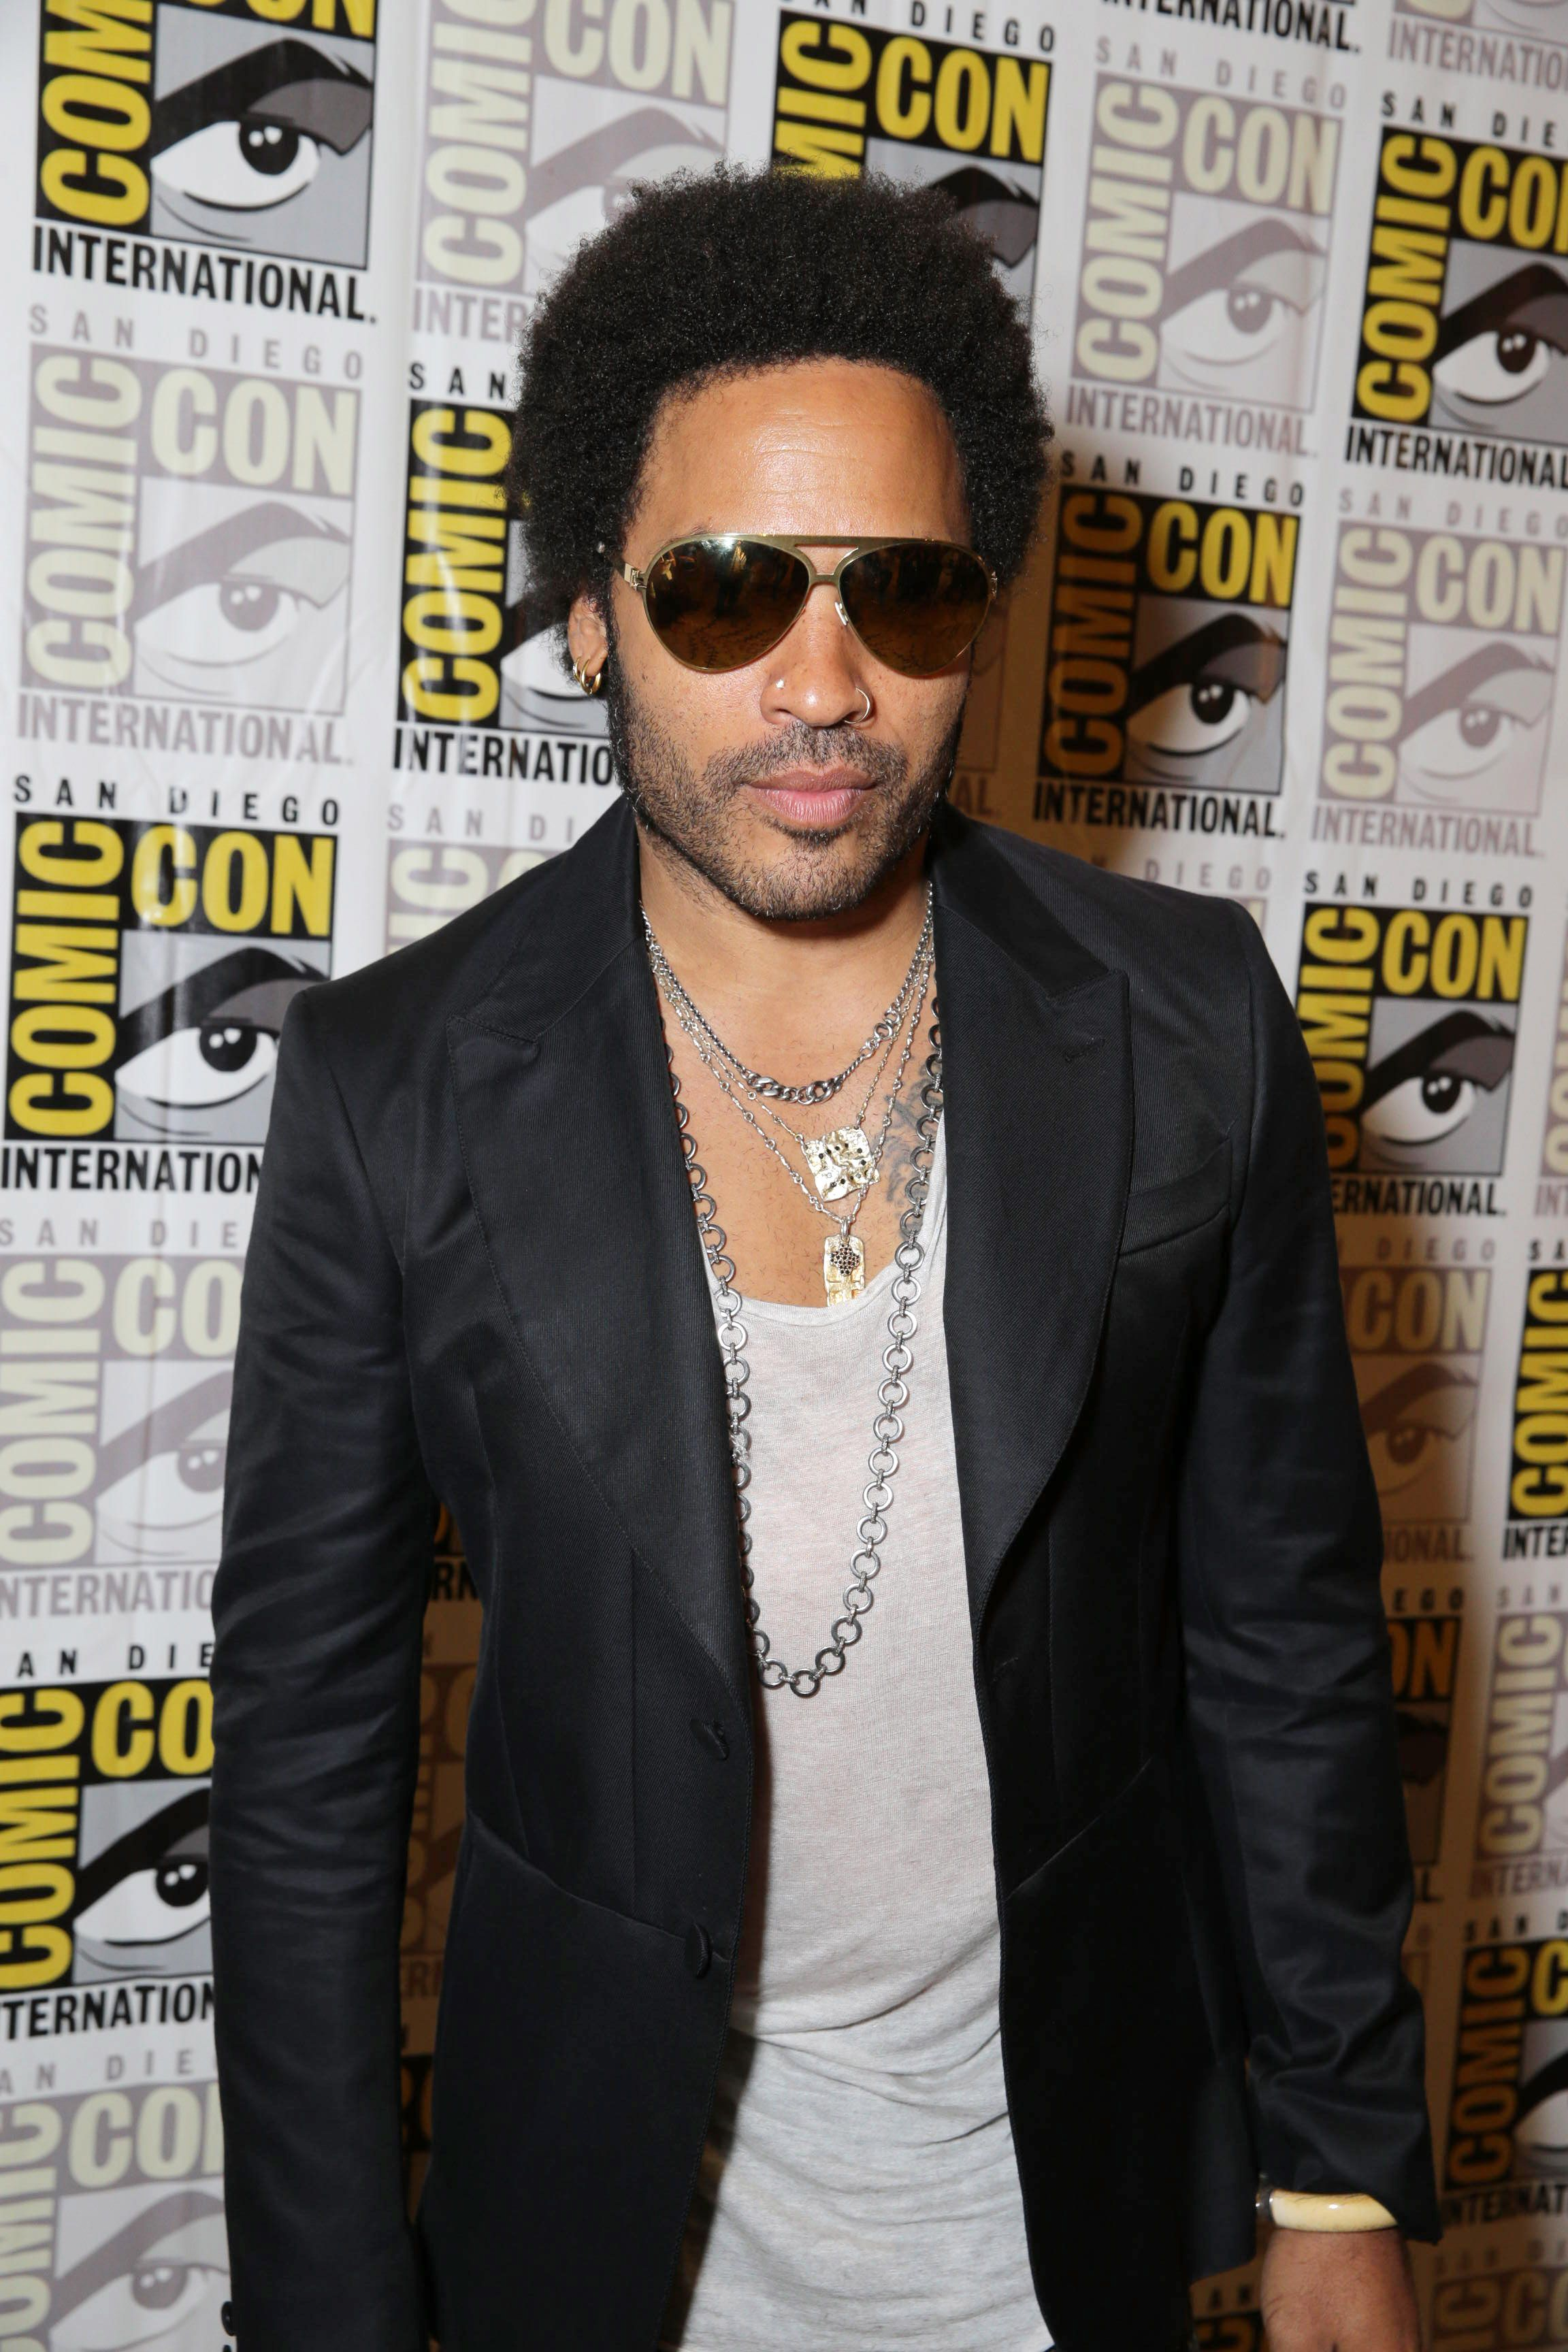 Lenny Kravitz Cinna At The Sdcc Press Line Lenny Kravitz